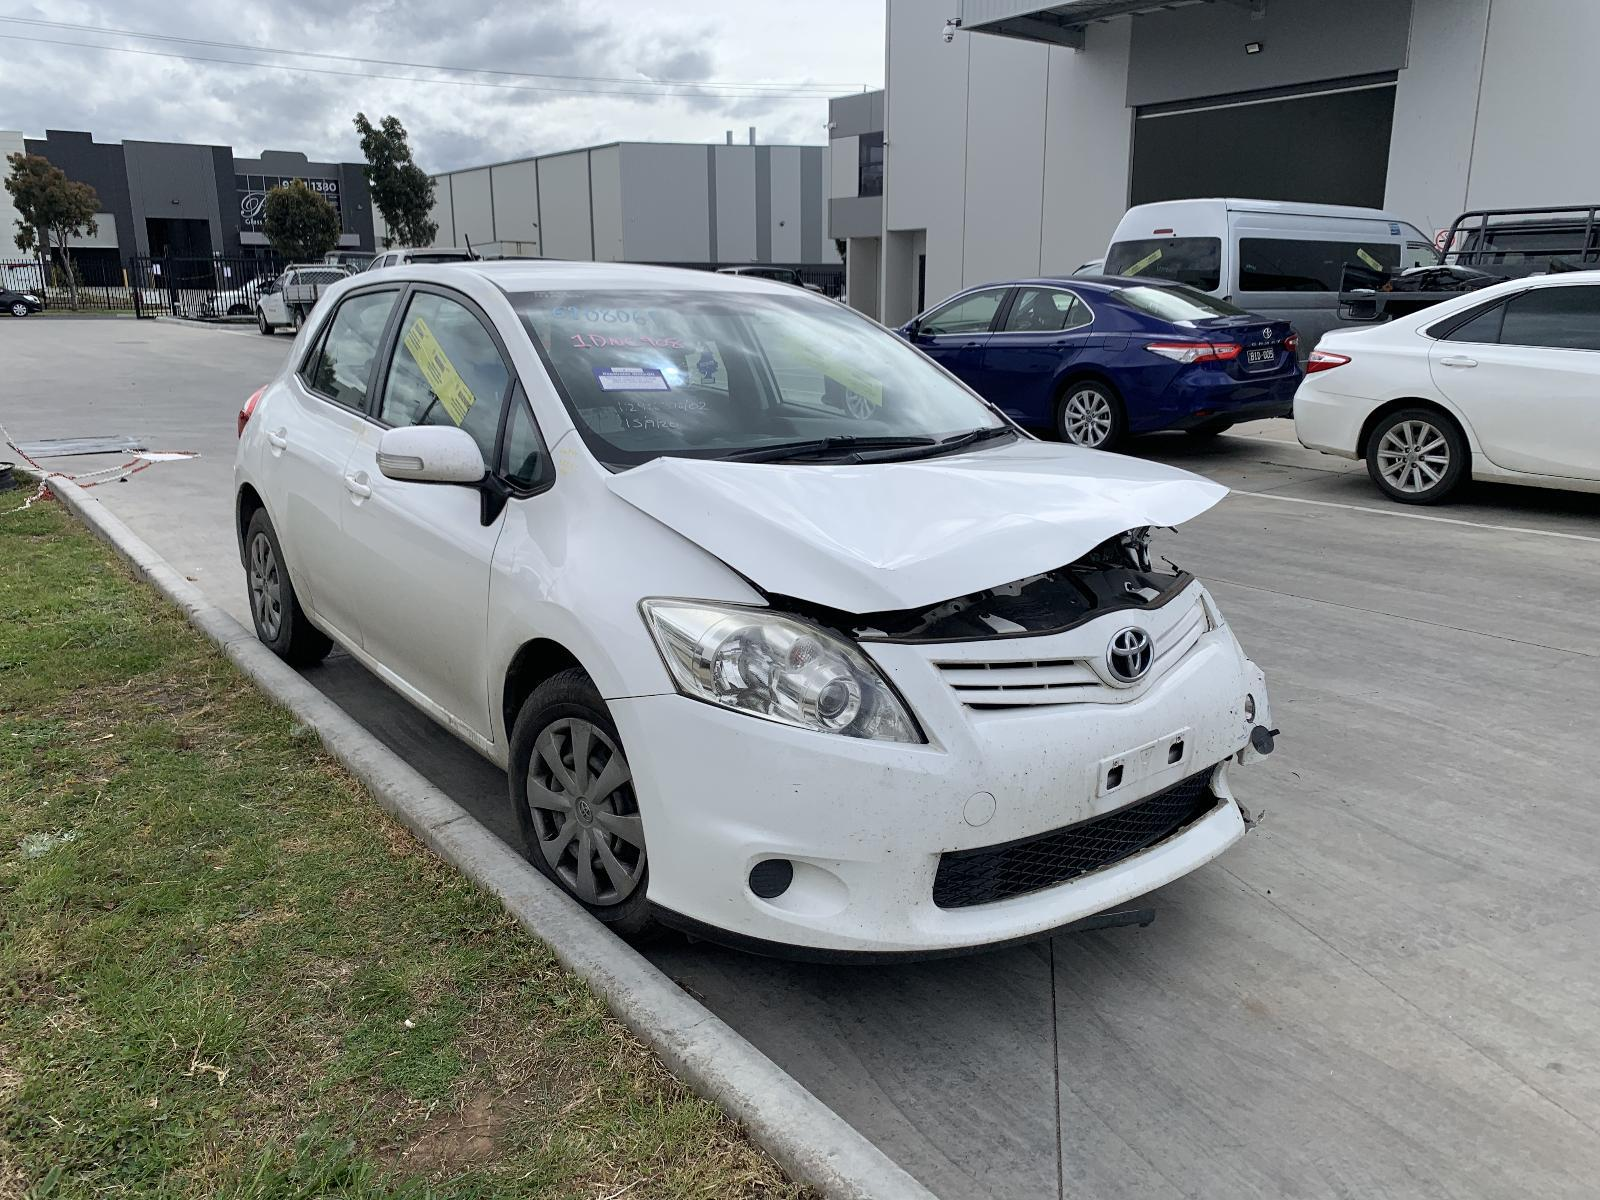 Toyota Corolla ZRE152 Ascent 2ZR-FE 1.8L Engine Automatic FWD Transmission 03/07 - 09/12